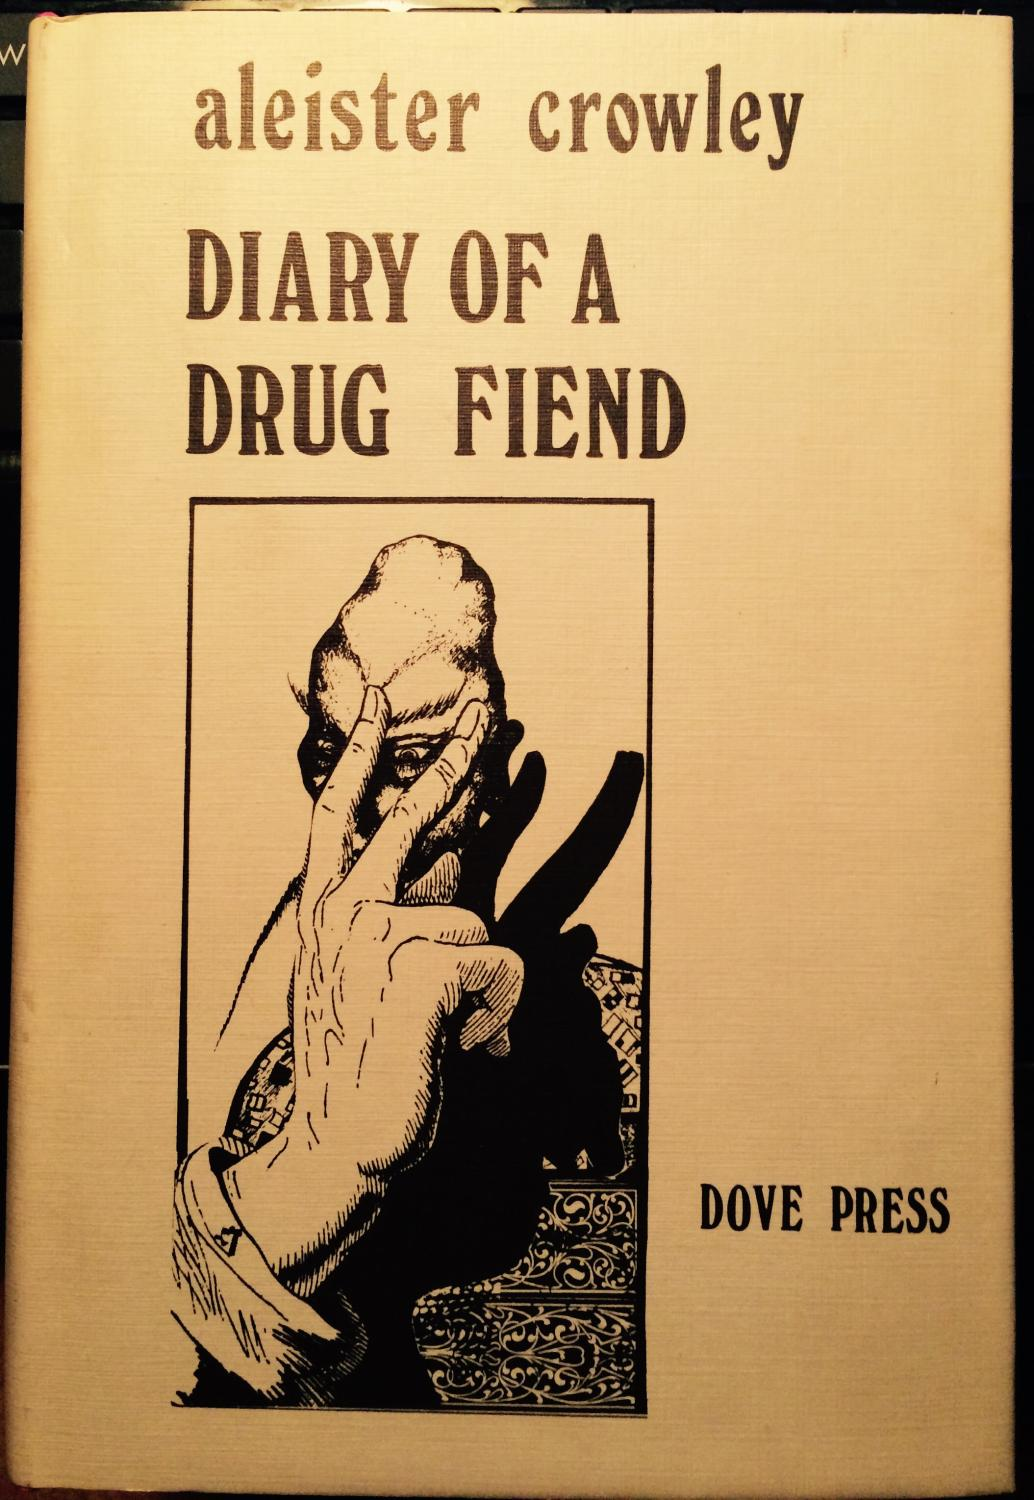 Diary Of A Drug Fiend (Jimmy Page's Copy): Aleister Crowley